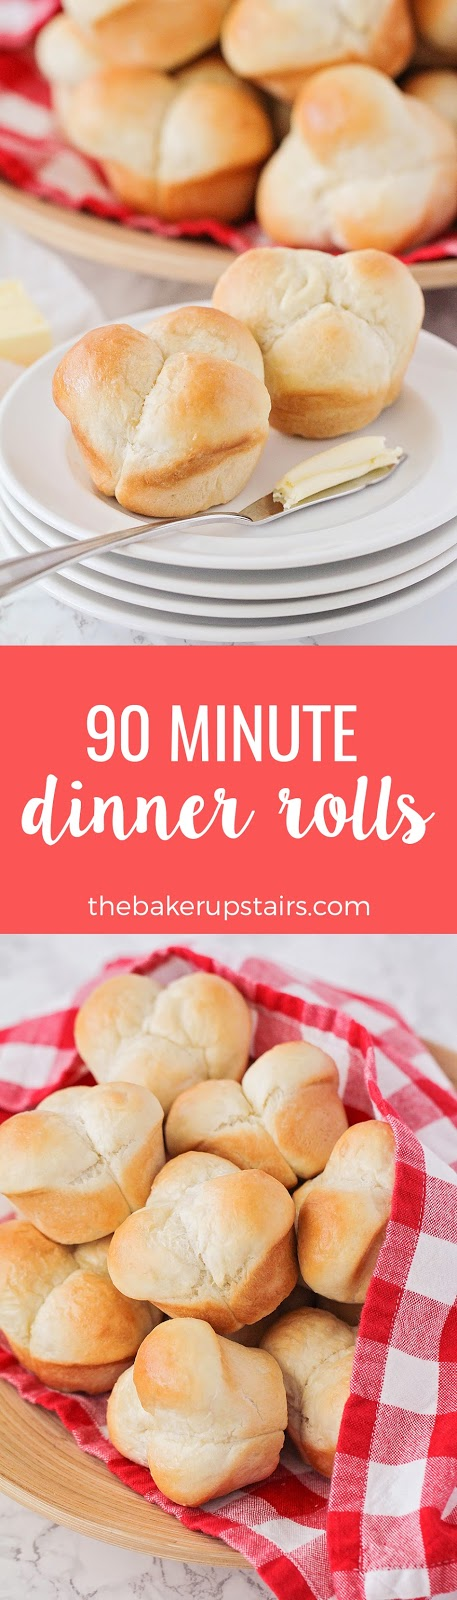 These 90 minute dinner rolls are so light and fluffy, and taste amazing!